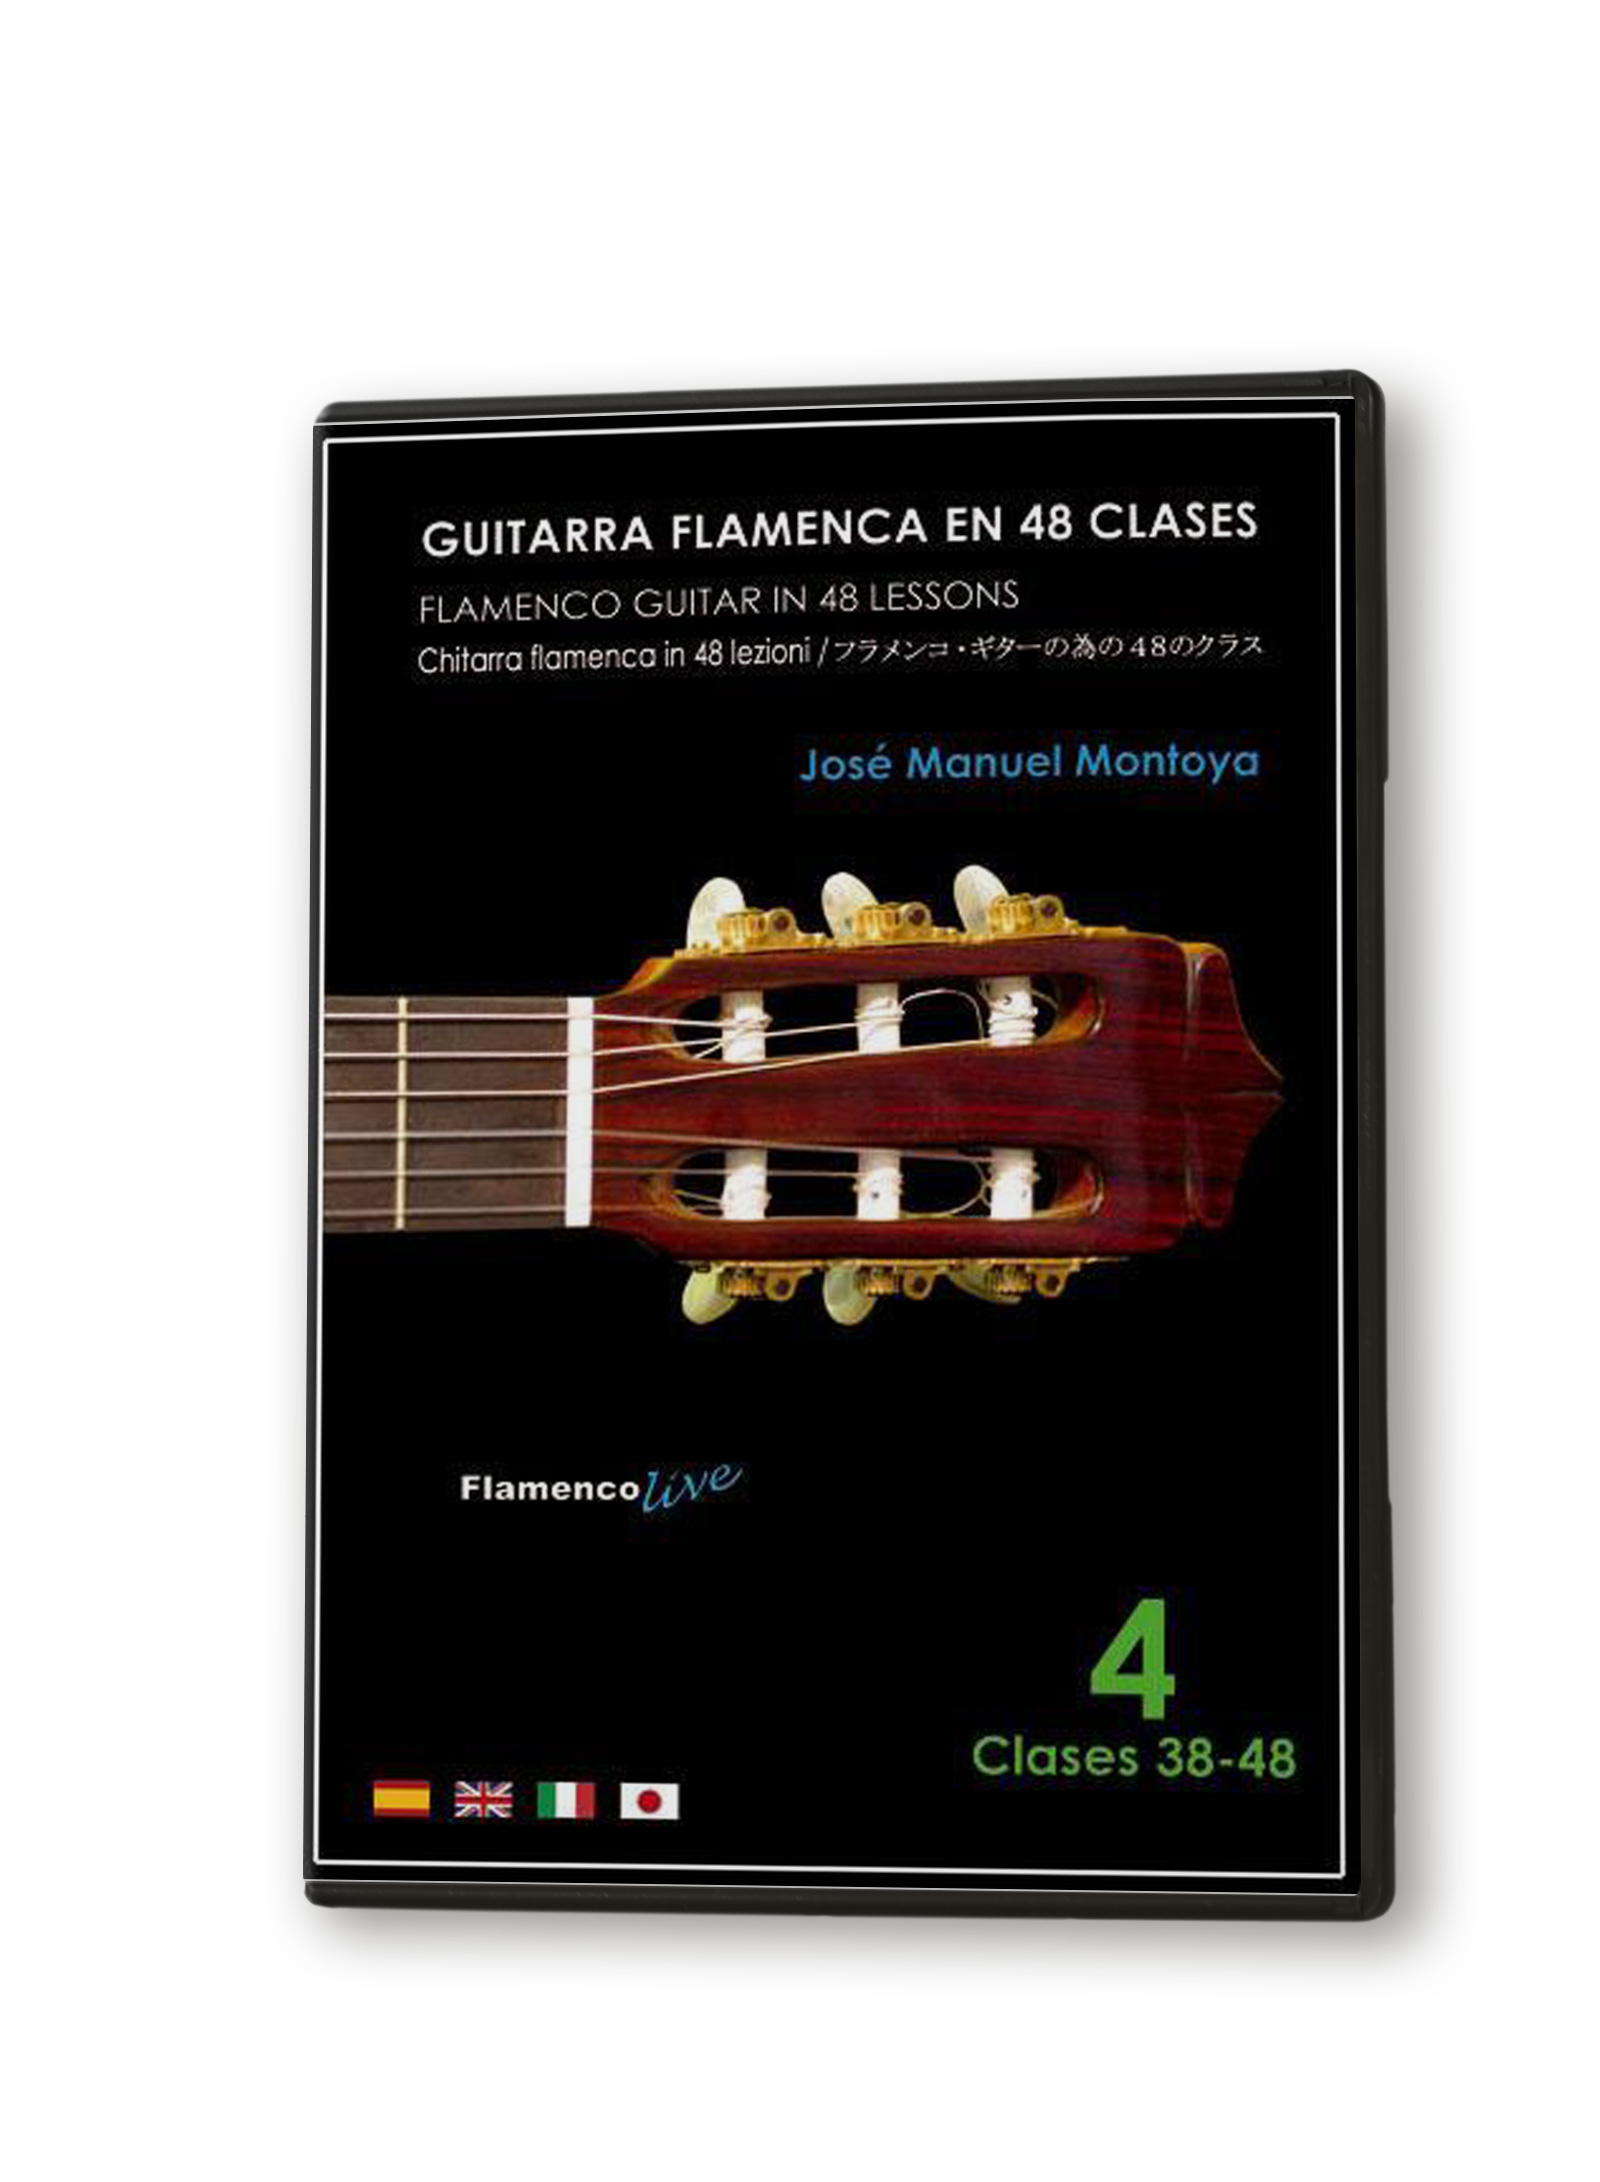 Flamenco guitar in 48 classes DVD 4